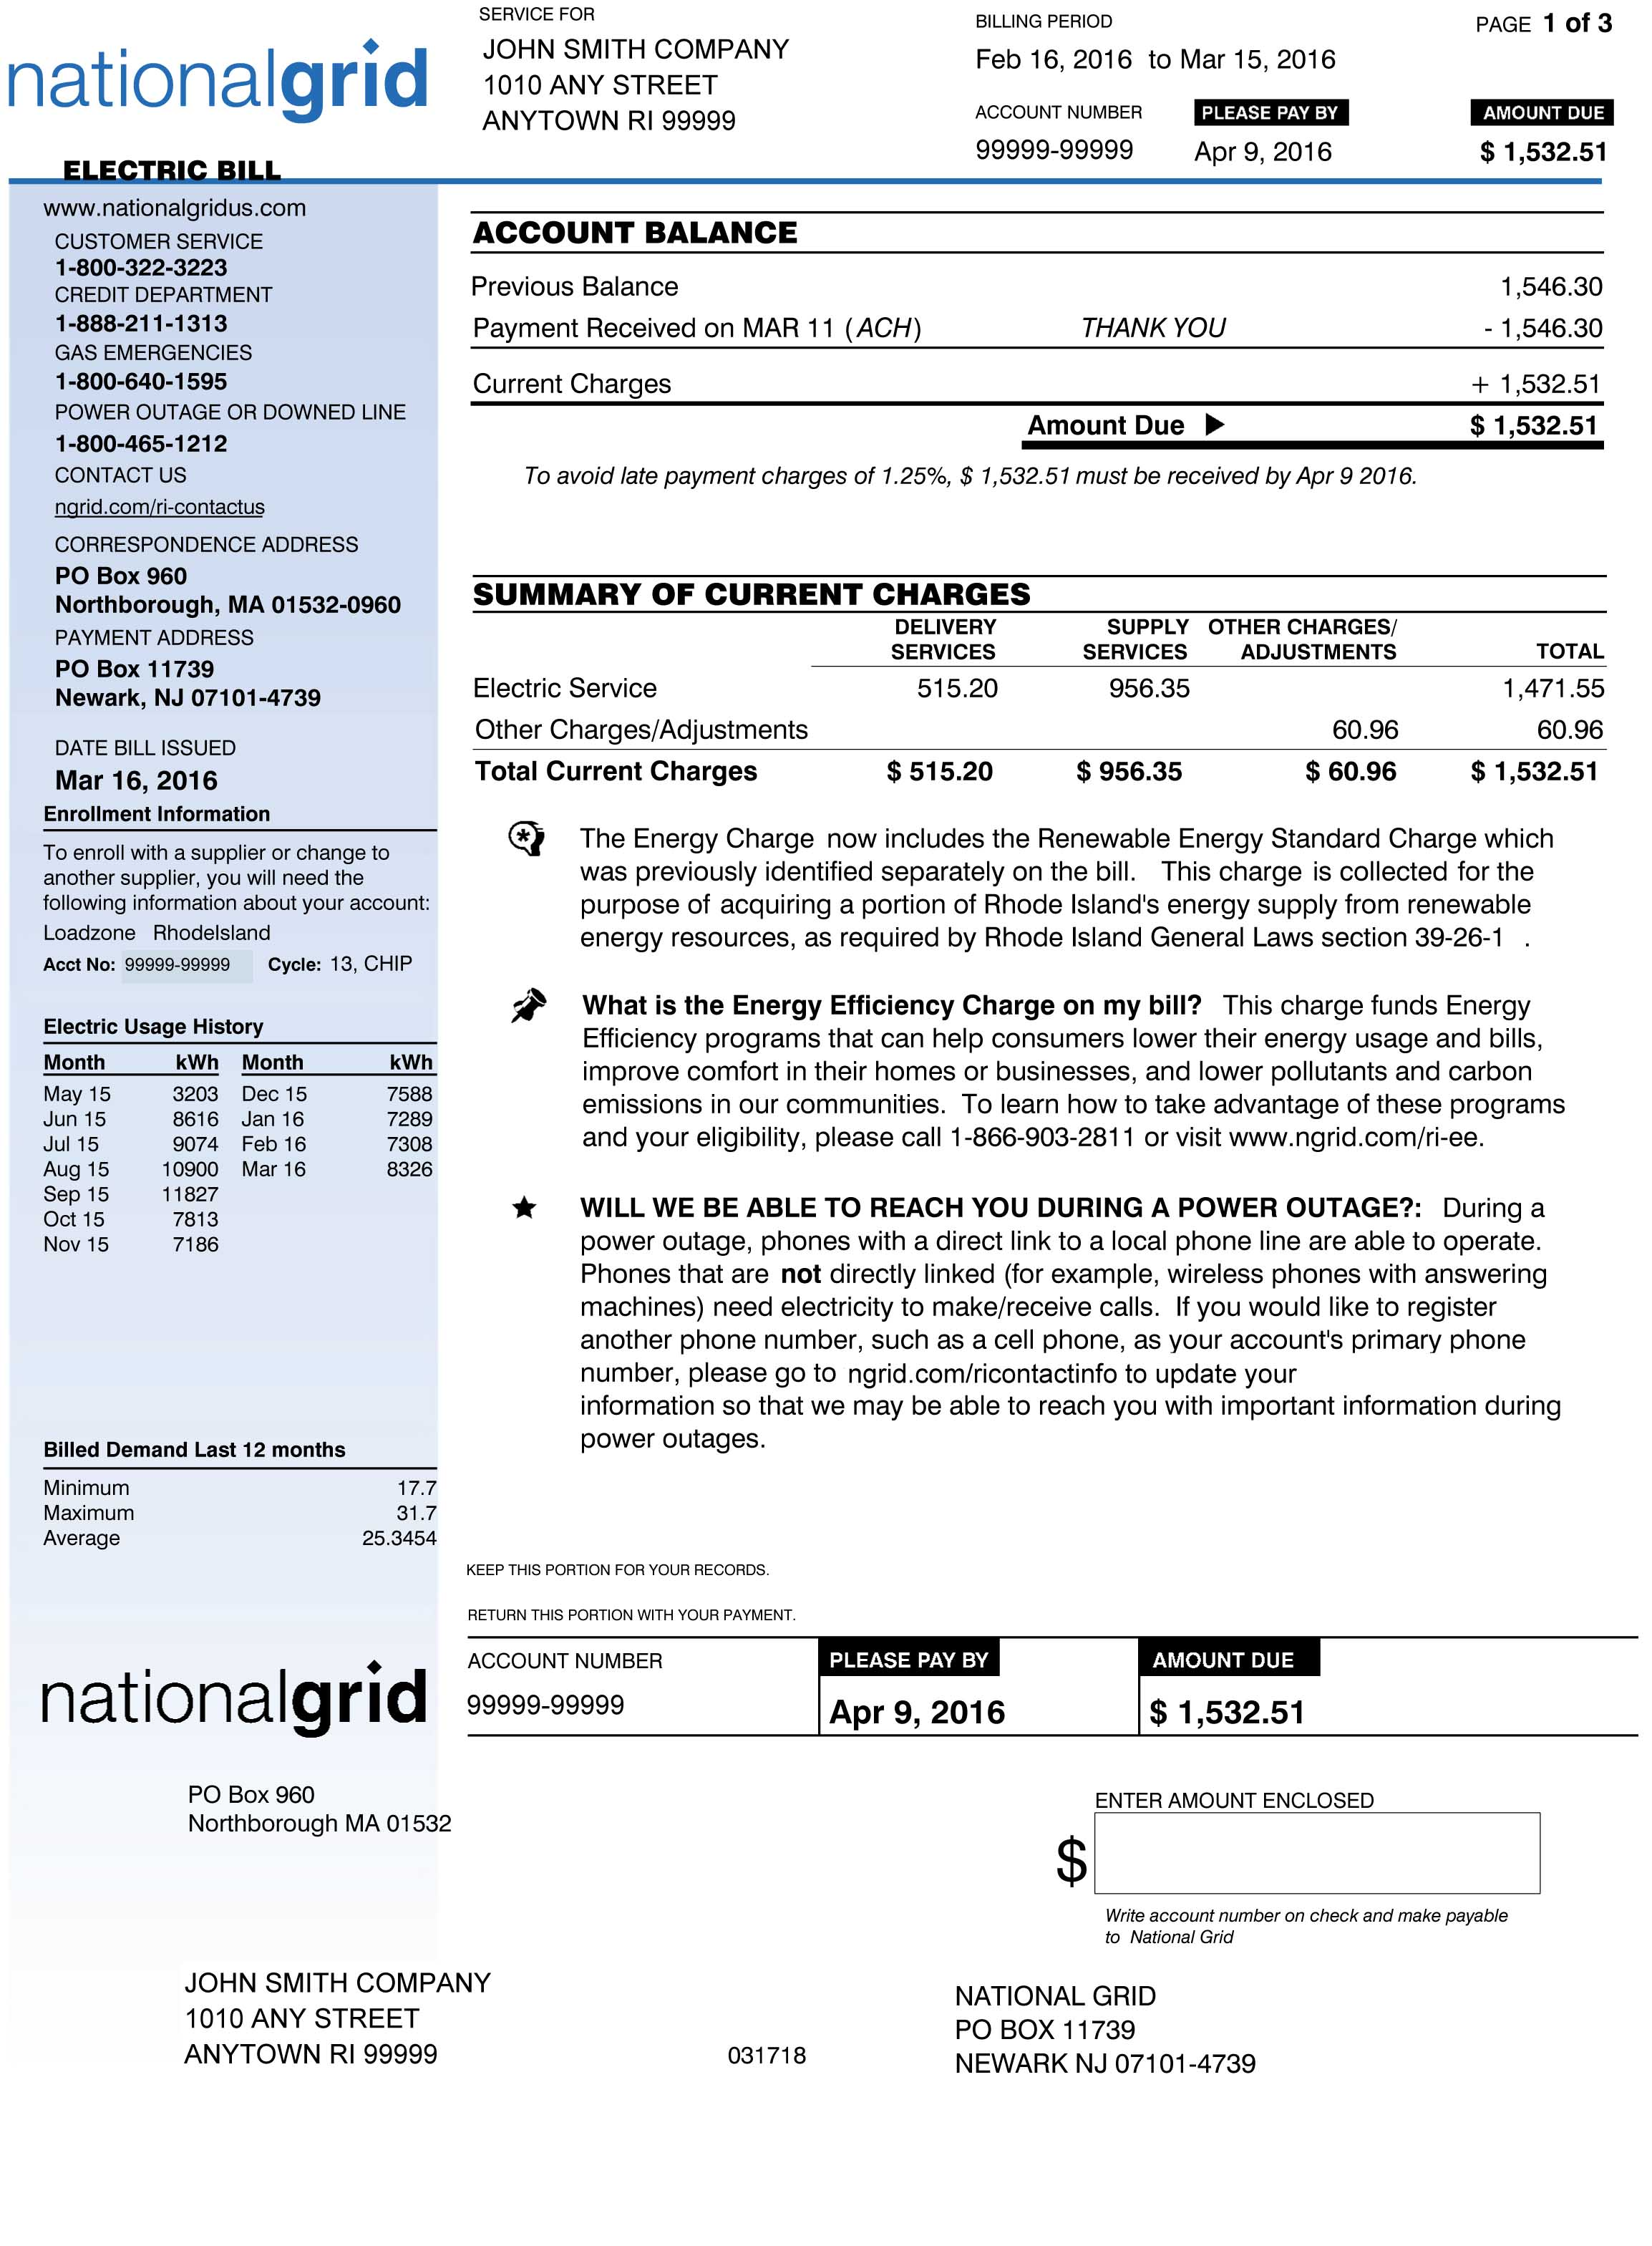 RI Sample Electric Bill Page 1